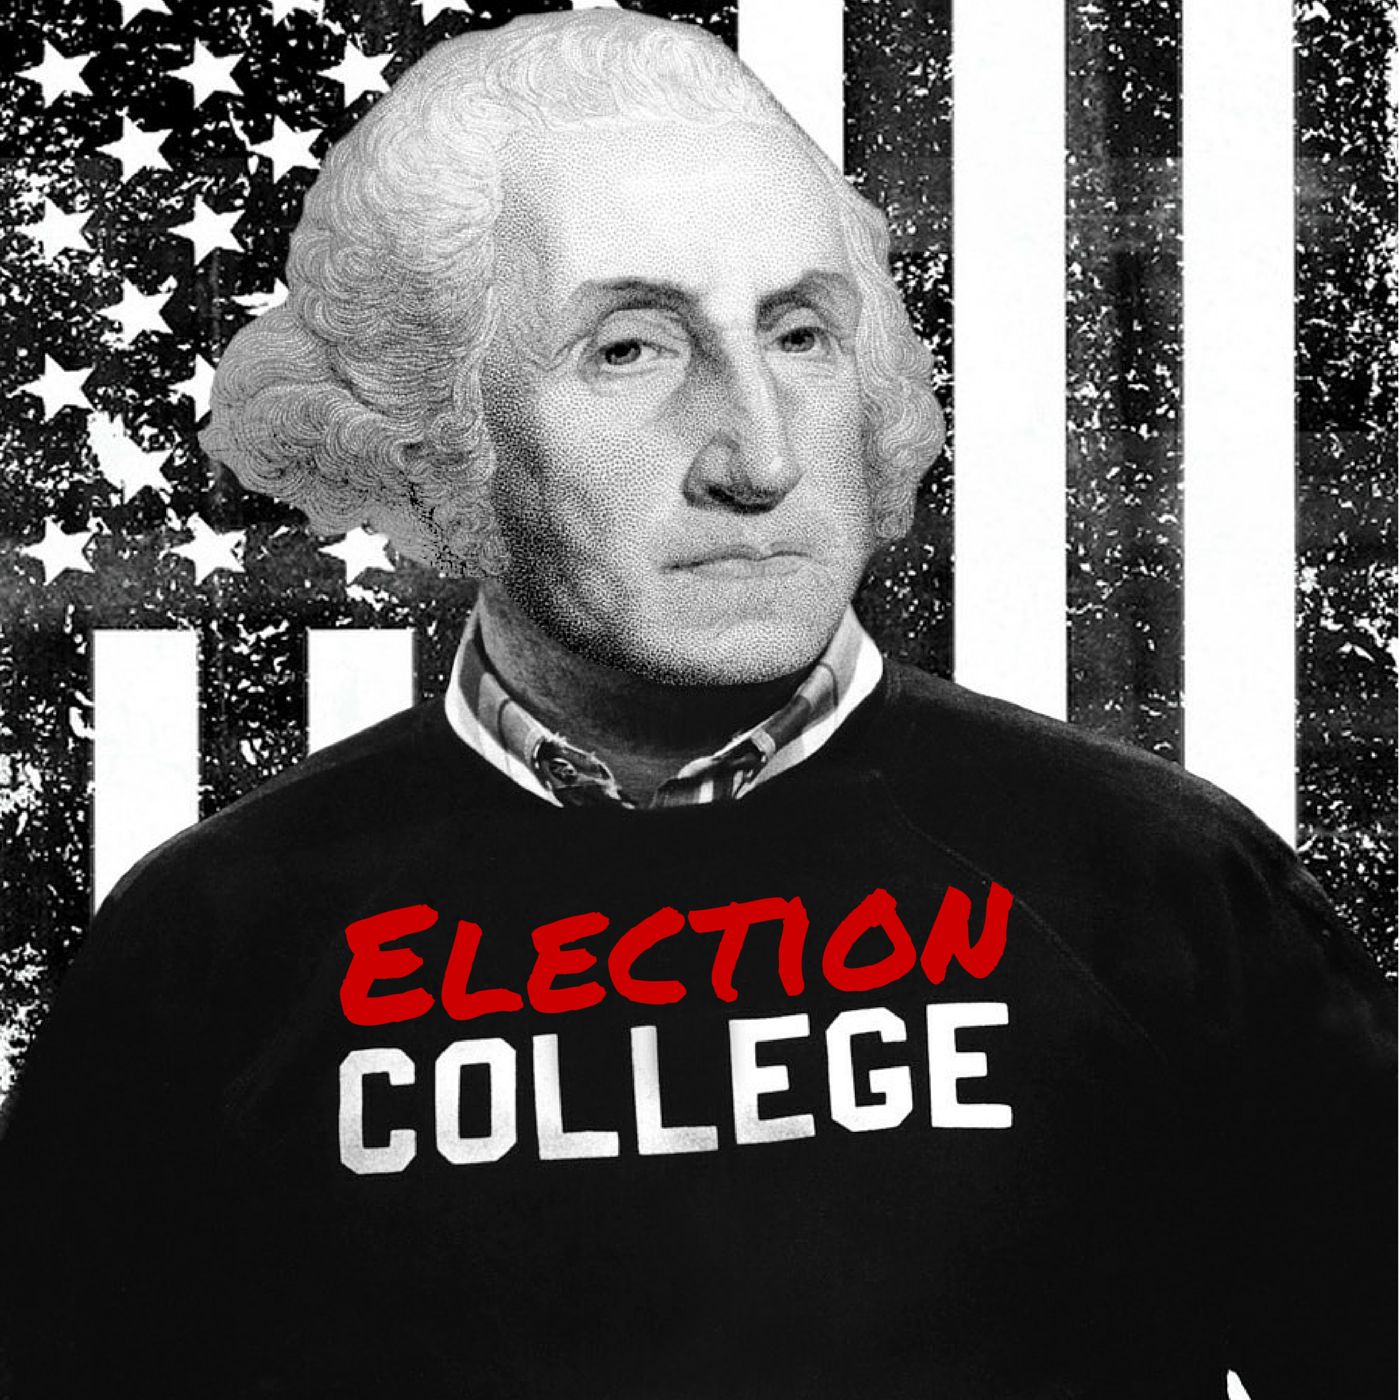 REBROADCAST: Schuyler Colfax | Episode #164 | Election College: United States Presidential Election History